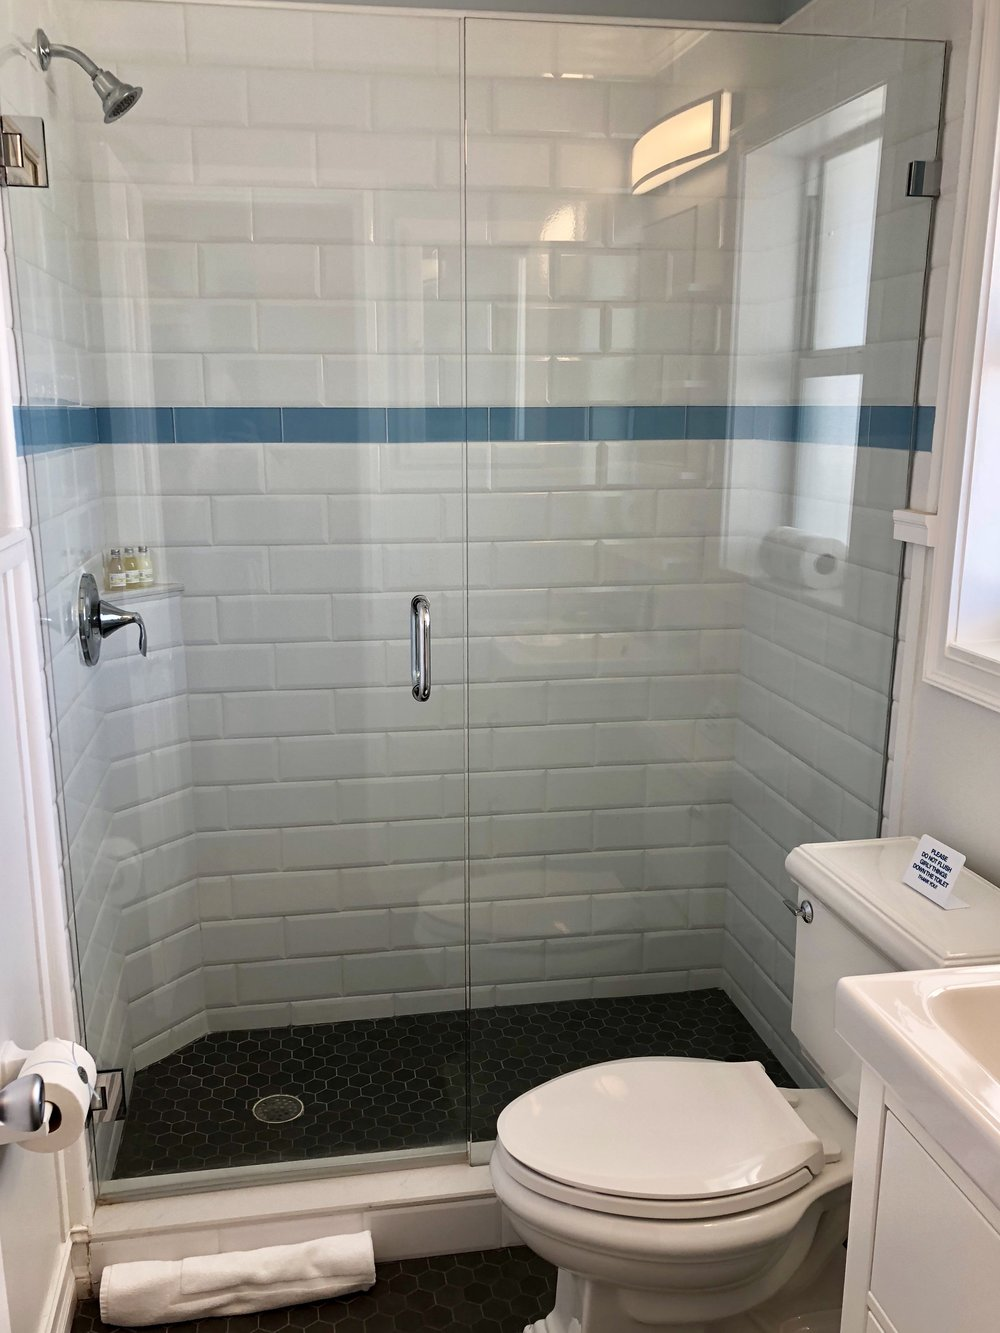 bathroom1.jpeg